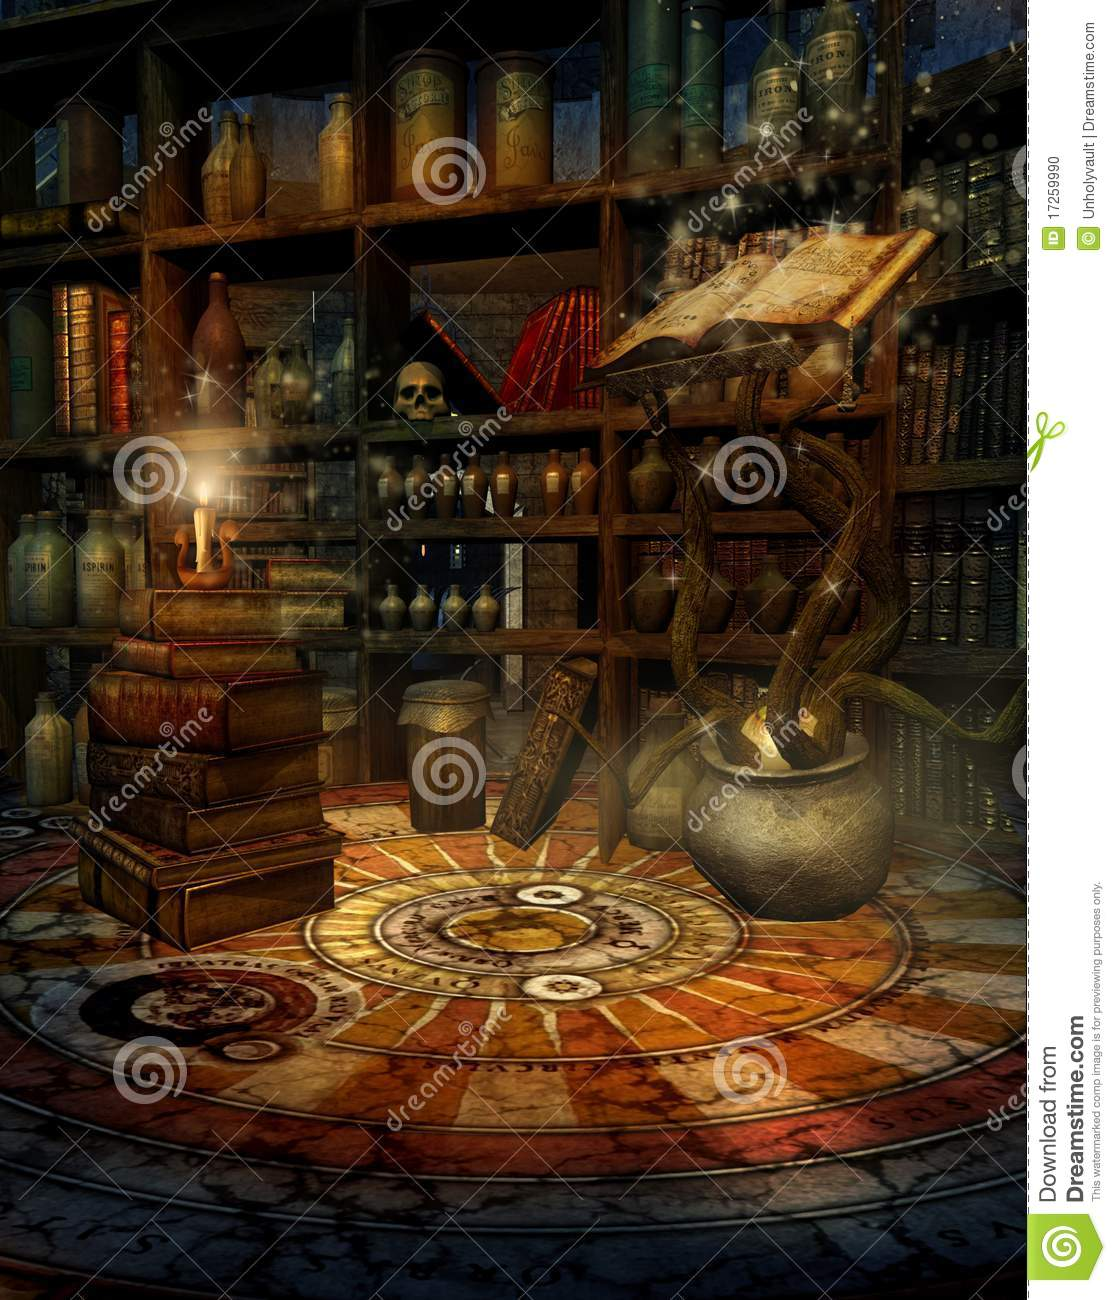 House Plans 5 Bedrooms Wizard S House 2 Stock Illustration Image Of Light Study